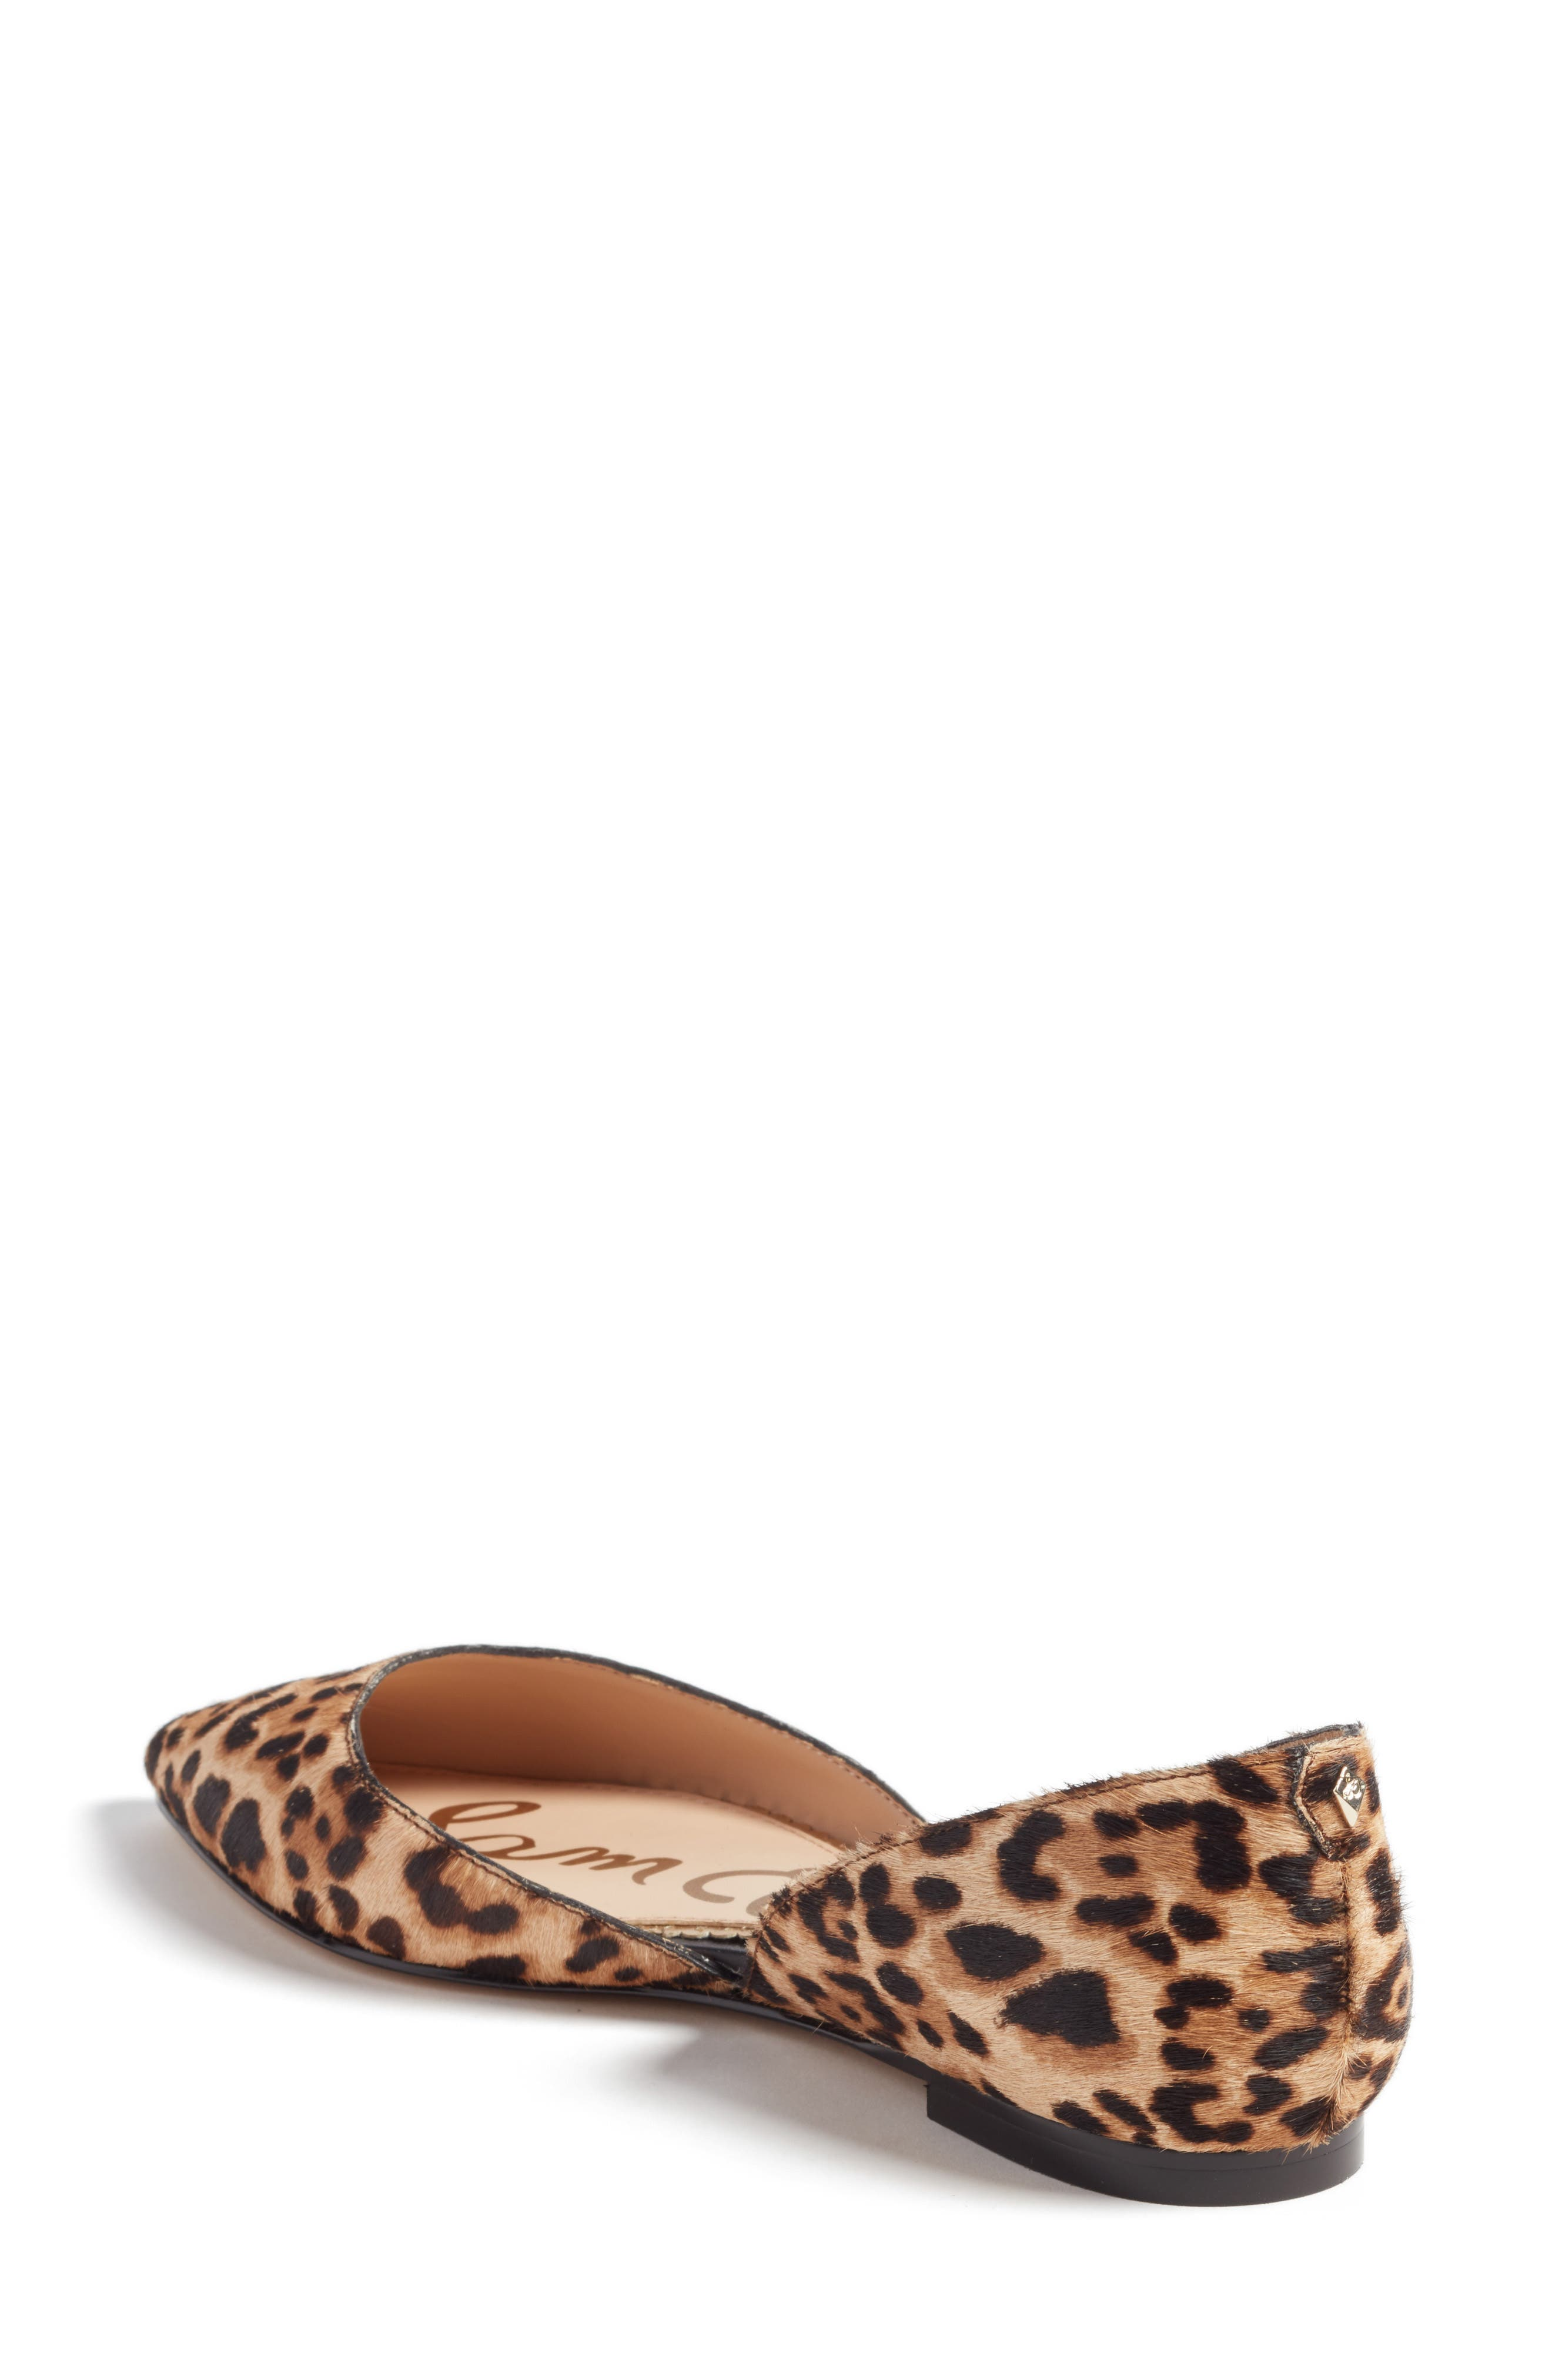 Rodney Pointy Toe Genuine Calf Hair Flat,                             Alternate thumbnail 2, color,                             Sand Leopard Calf Hair